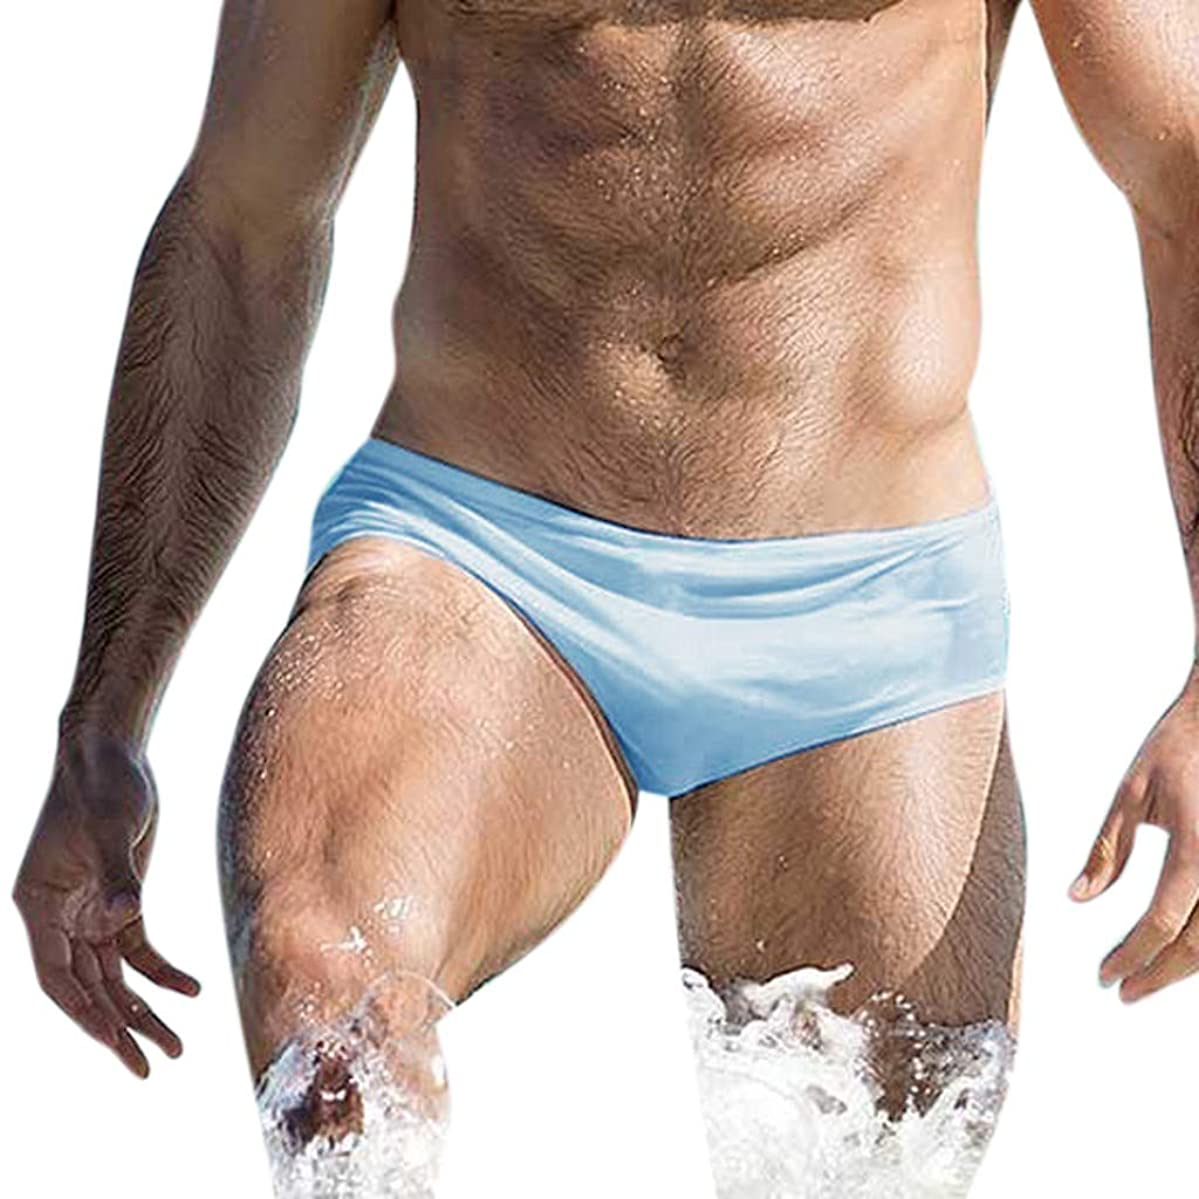 Men's Triangles Trunks | Solid Color Close-fitting Arena Swim Shorts Men's Ultrathin UV Protection Chlorine Resistant Swimming Pants Watersports Quick-drying beach pants for swimming surfing S-XL